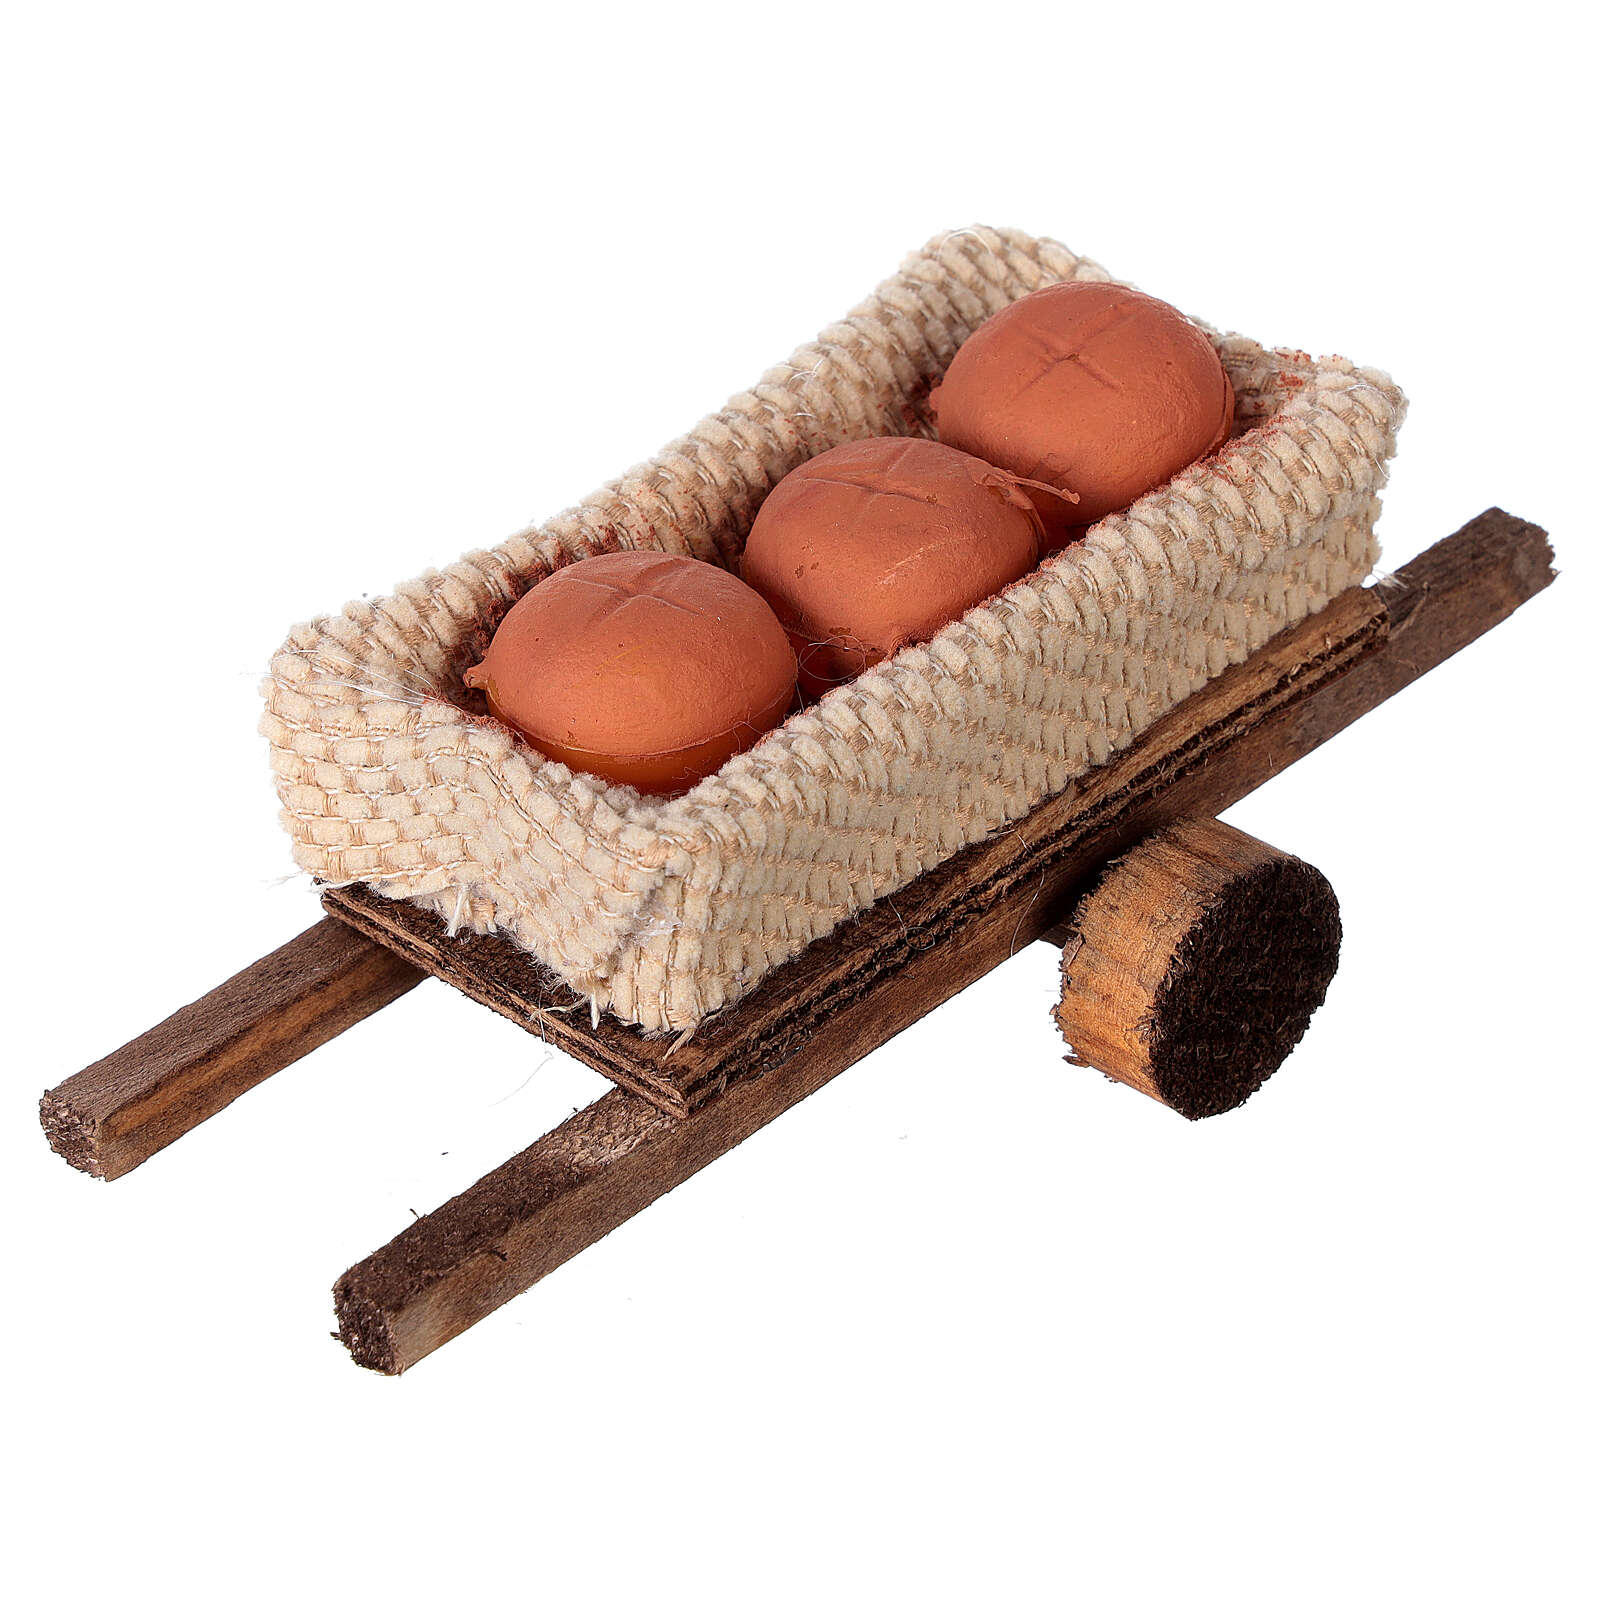 Cart with bread loaves 6x13x3.5 4